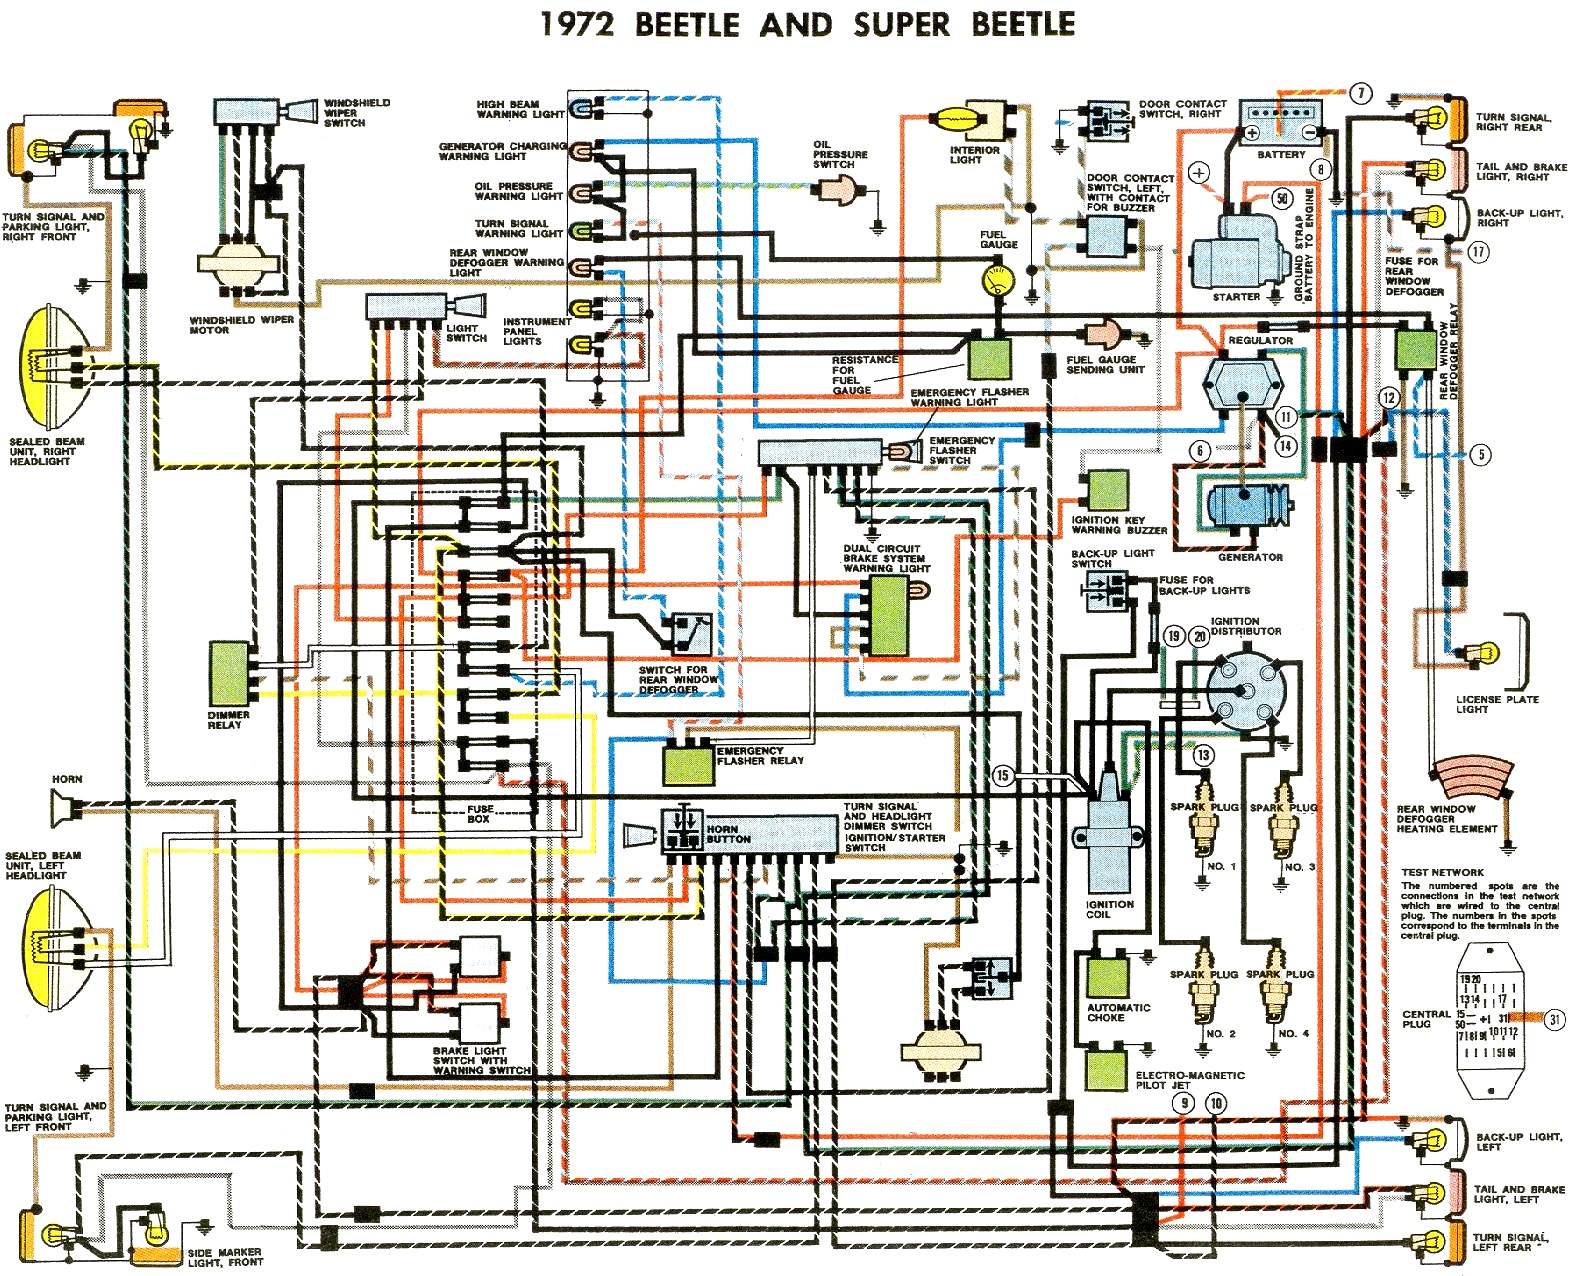 bug_72 vw beetle diagram vw beetle timing belt marks \u2022 wiring diagrams  at creativeand.co